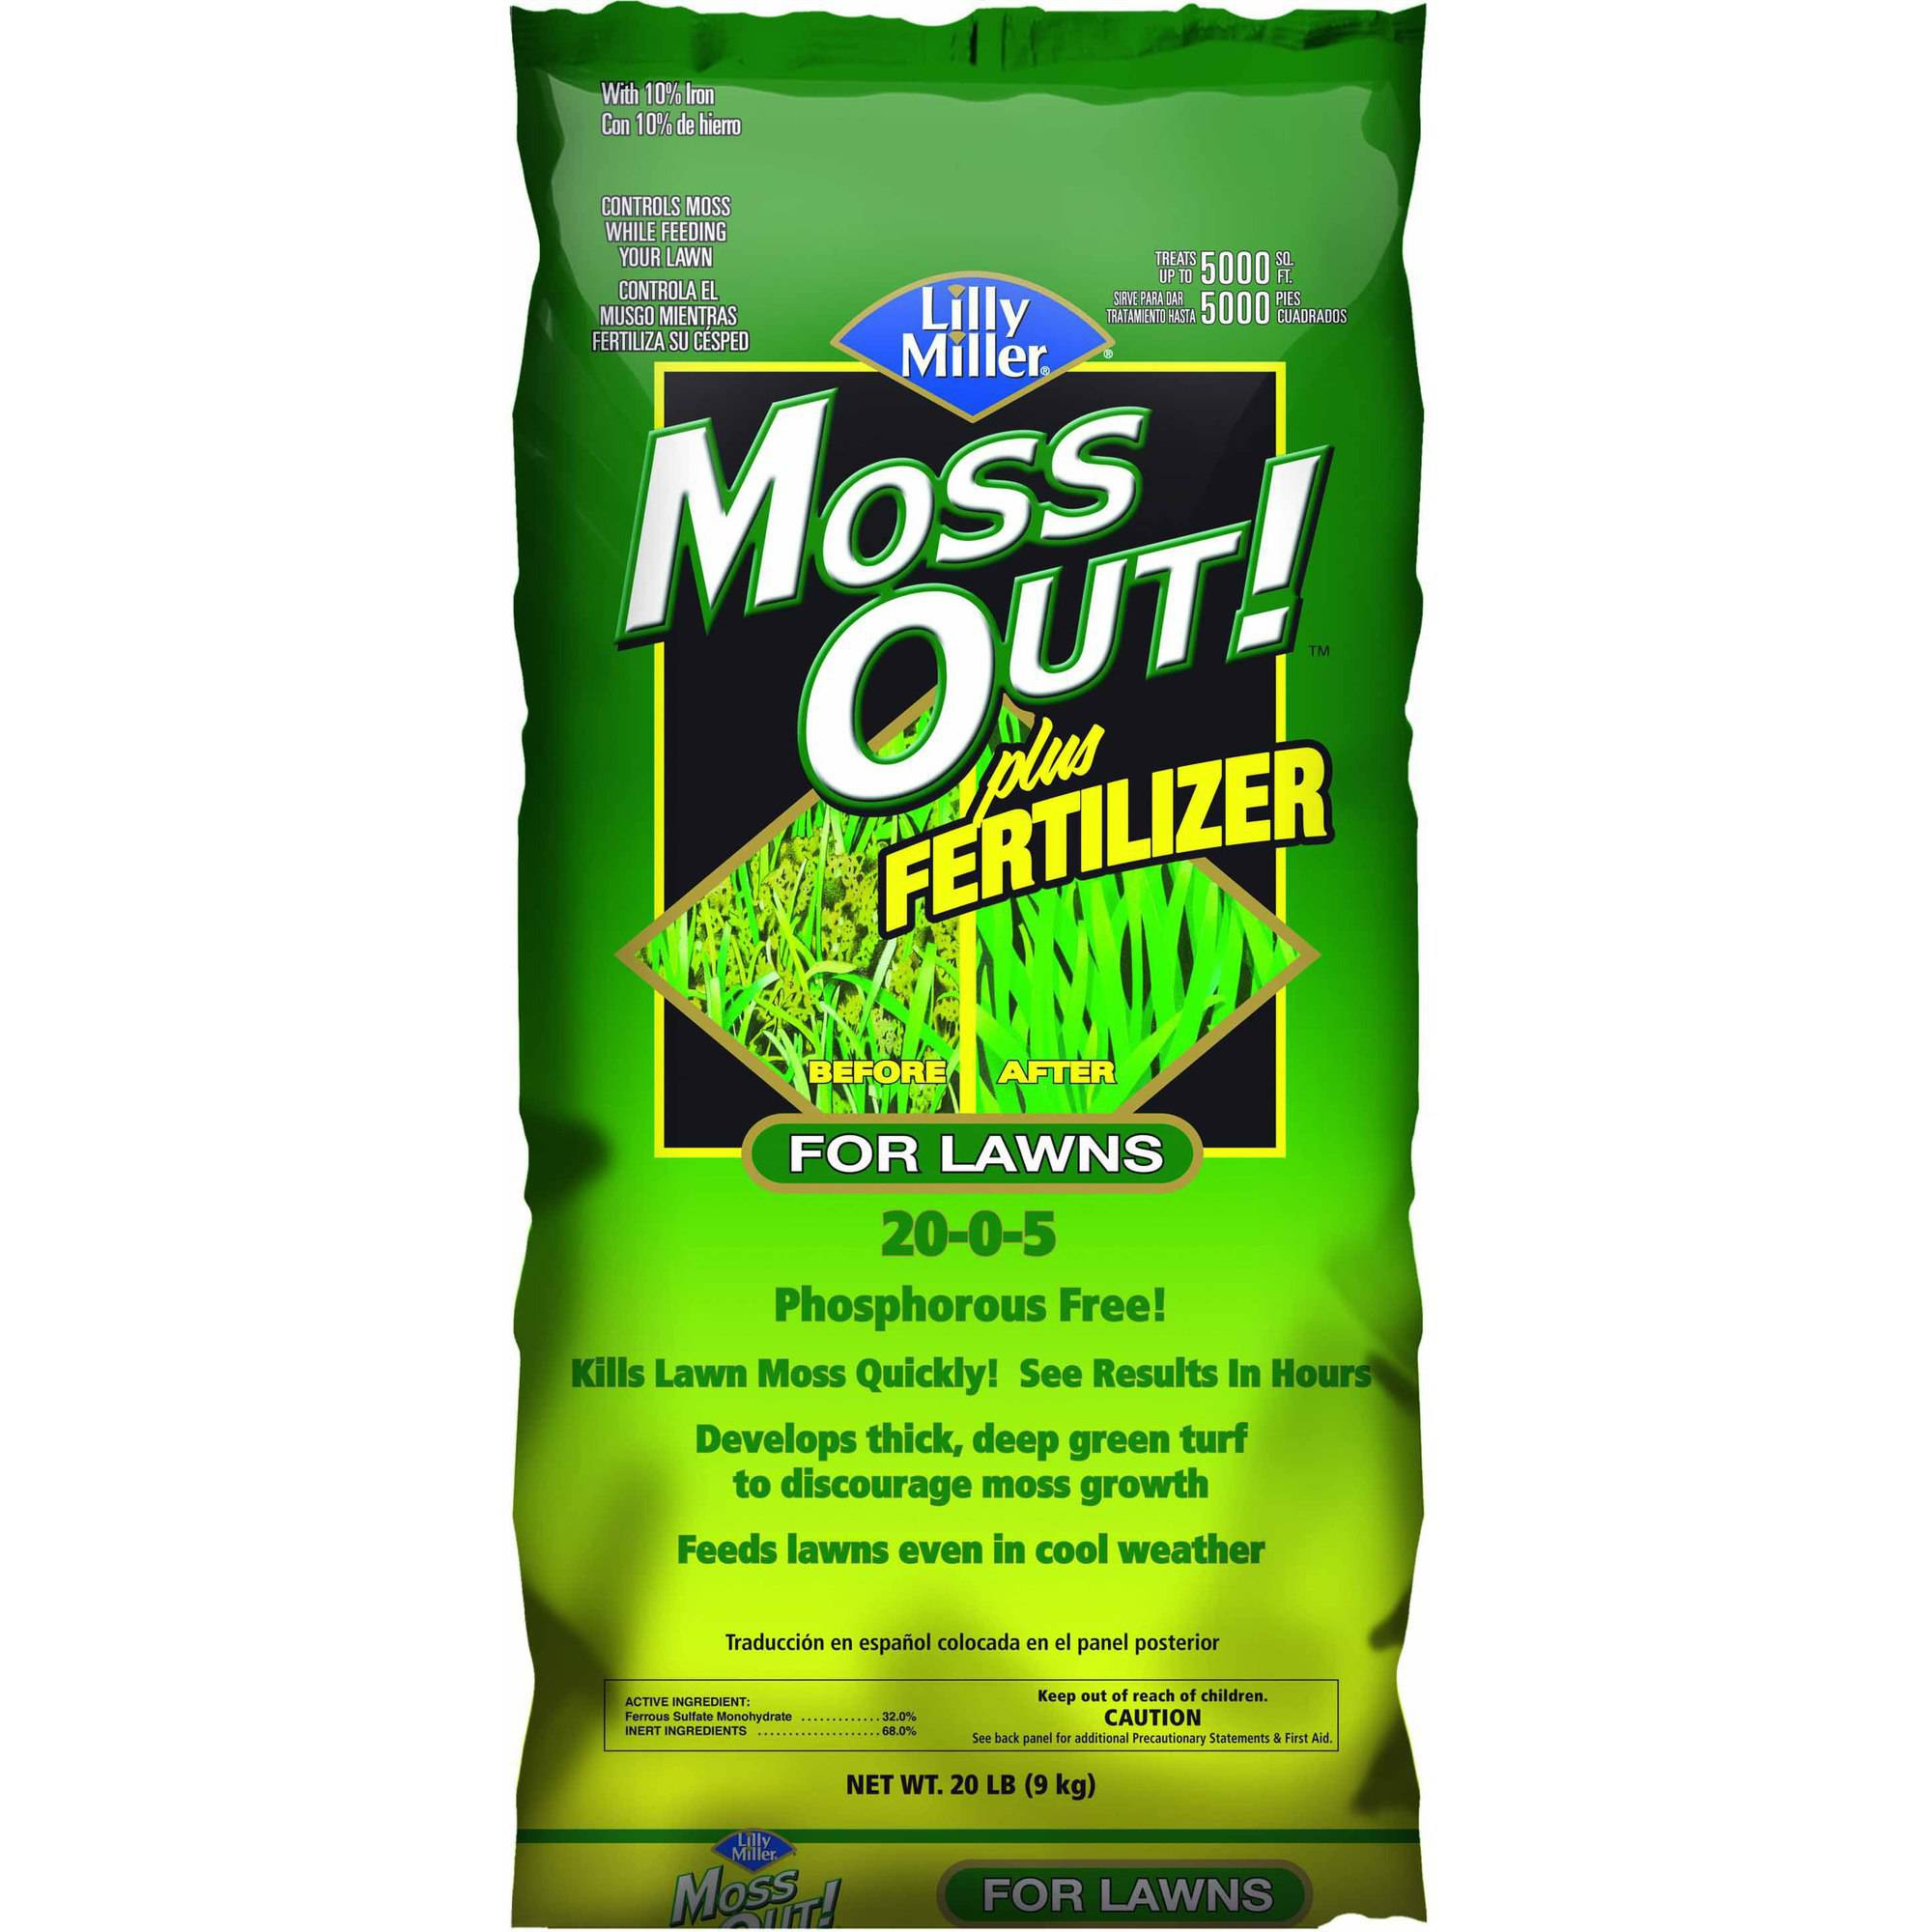 Lilly Miller 20-Pound Ready-to-Use Moss Out Plus Fertilizer